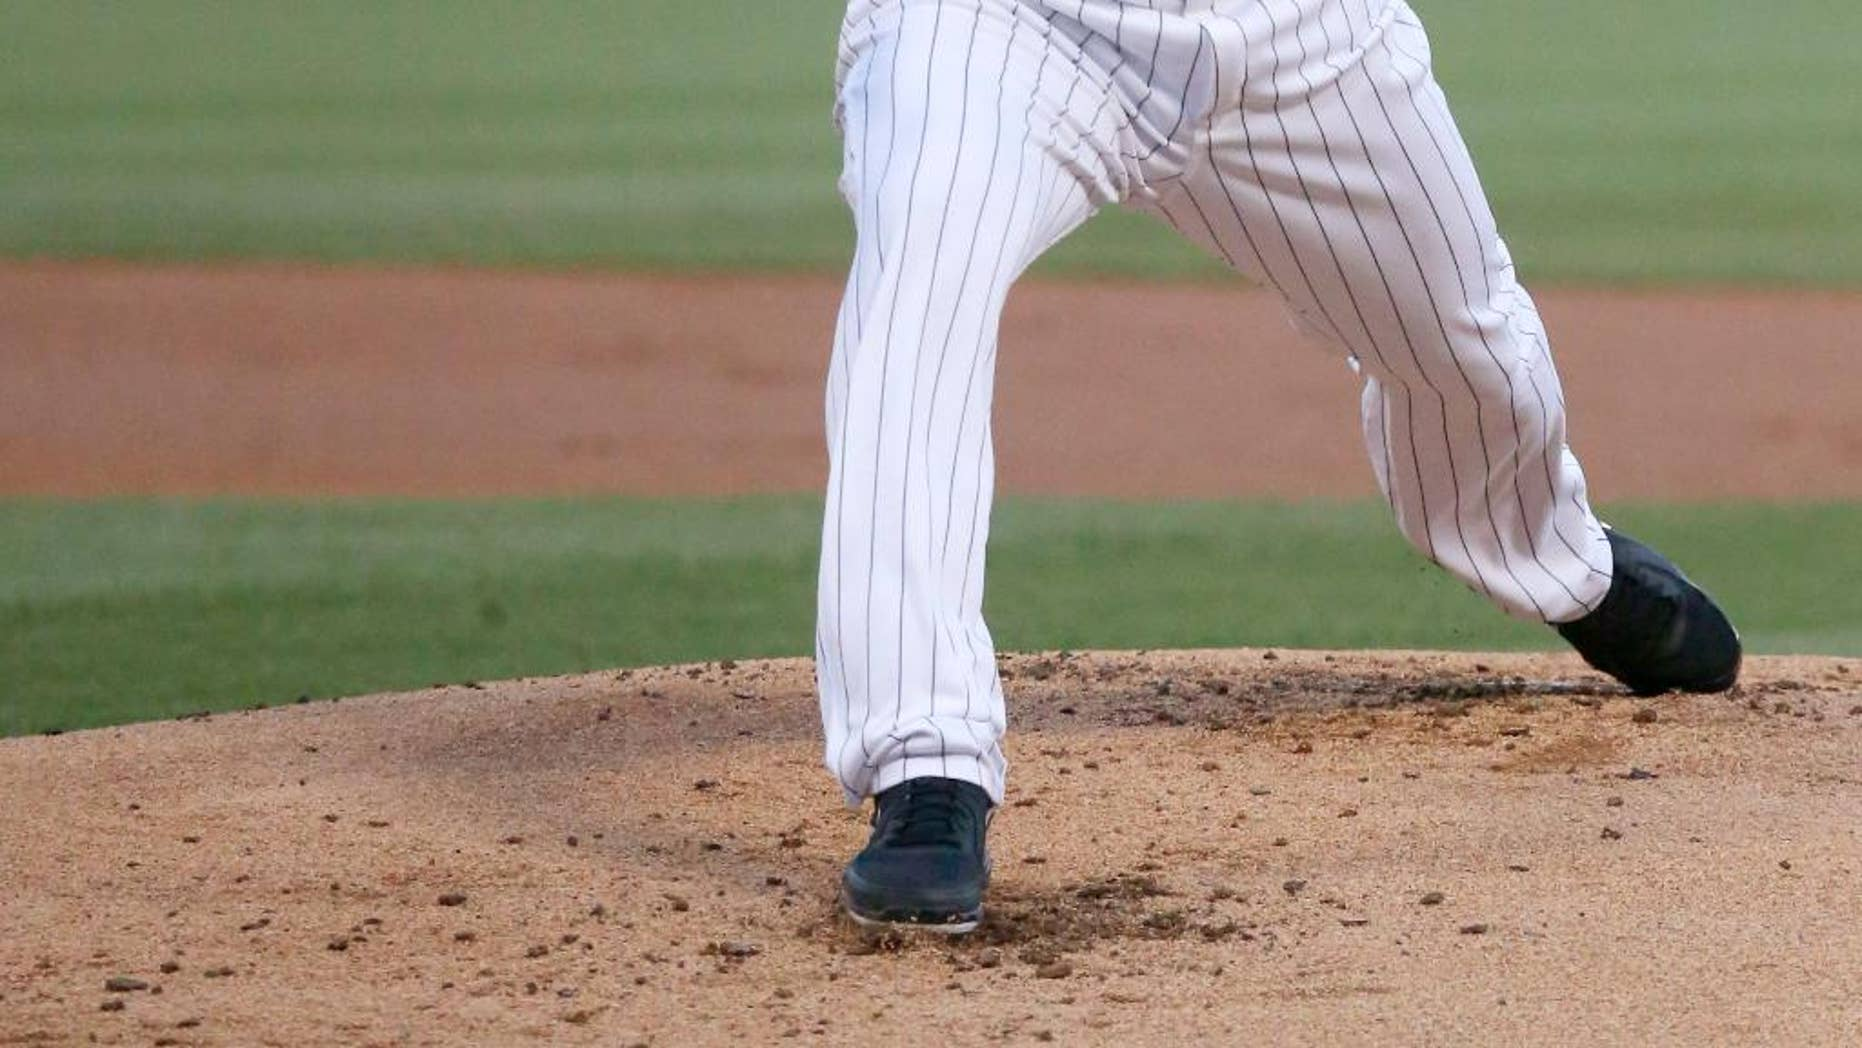 Chicago White Sox starting pitcher John Danks delivers during the first inning of an interleague baseball game against the San Diego Padres on Friday, May 30, 2014, in Chicago. (AP Photo/Charles Rex Arbogast)